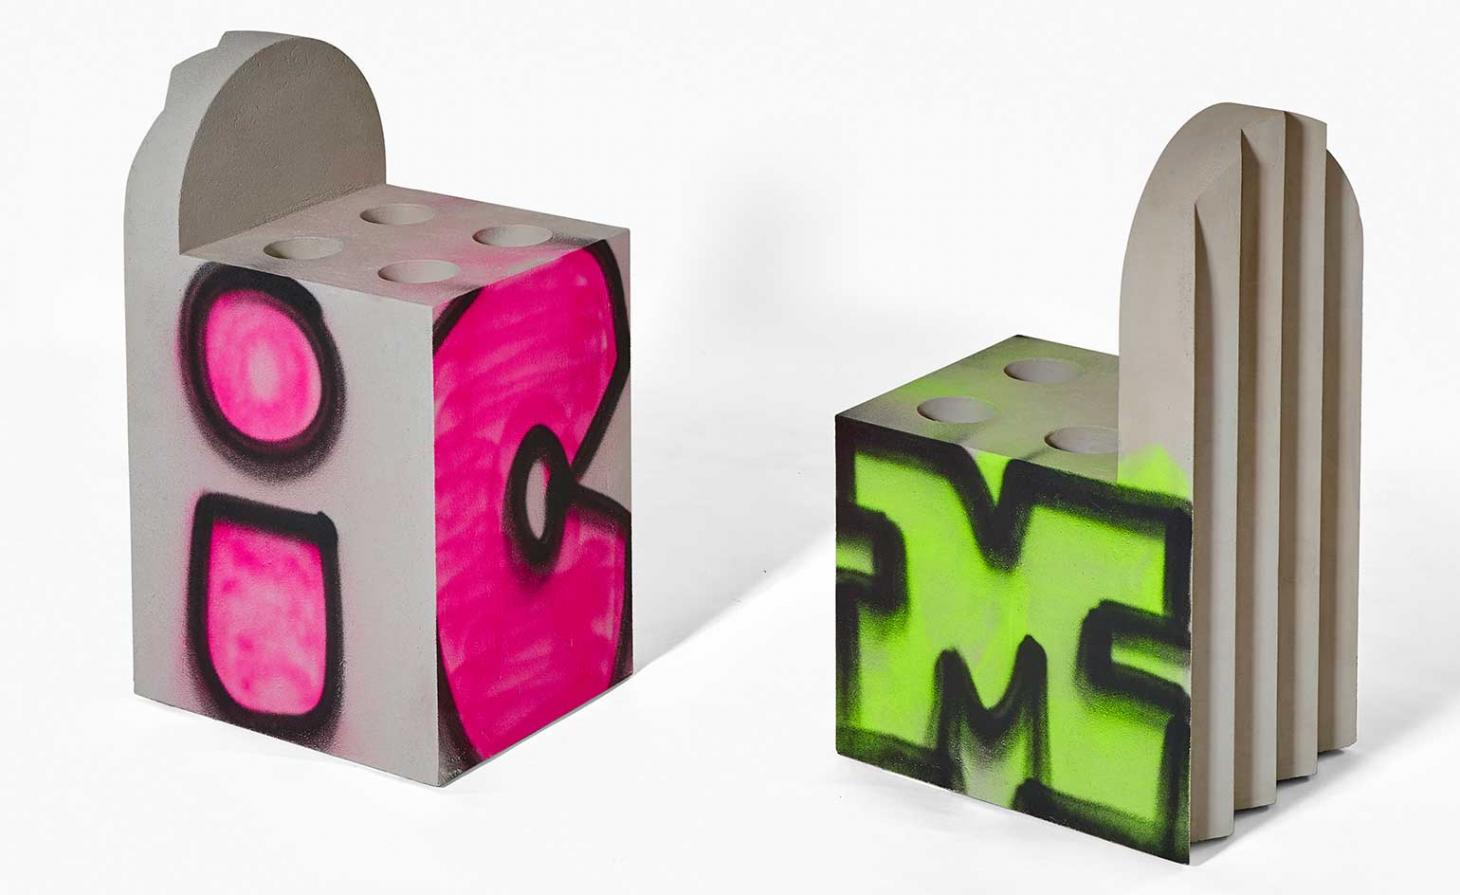 Virgil Abloh Efflorescence concrete chairs with graffiti for Galerie Kreo